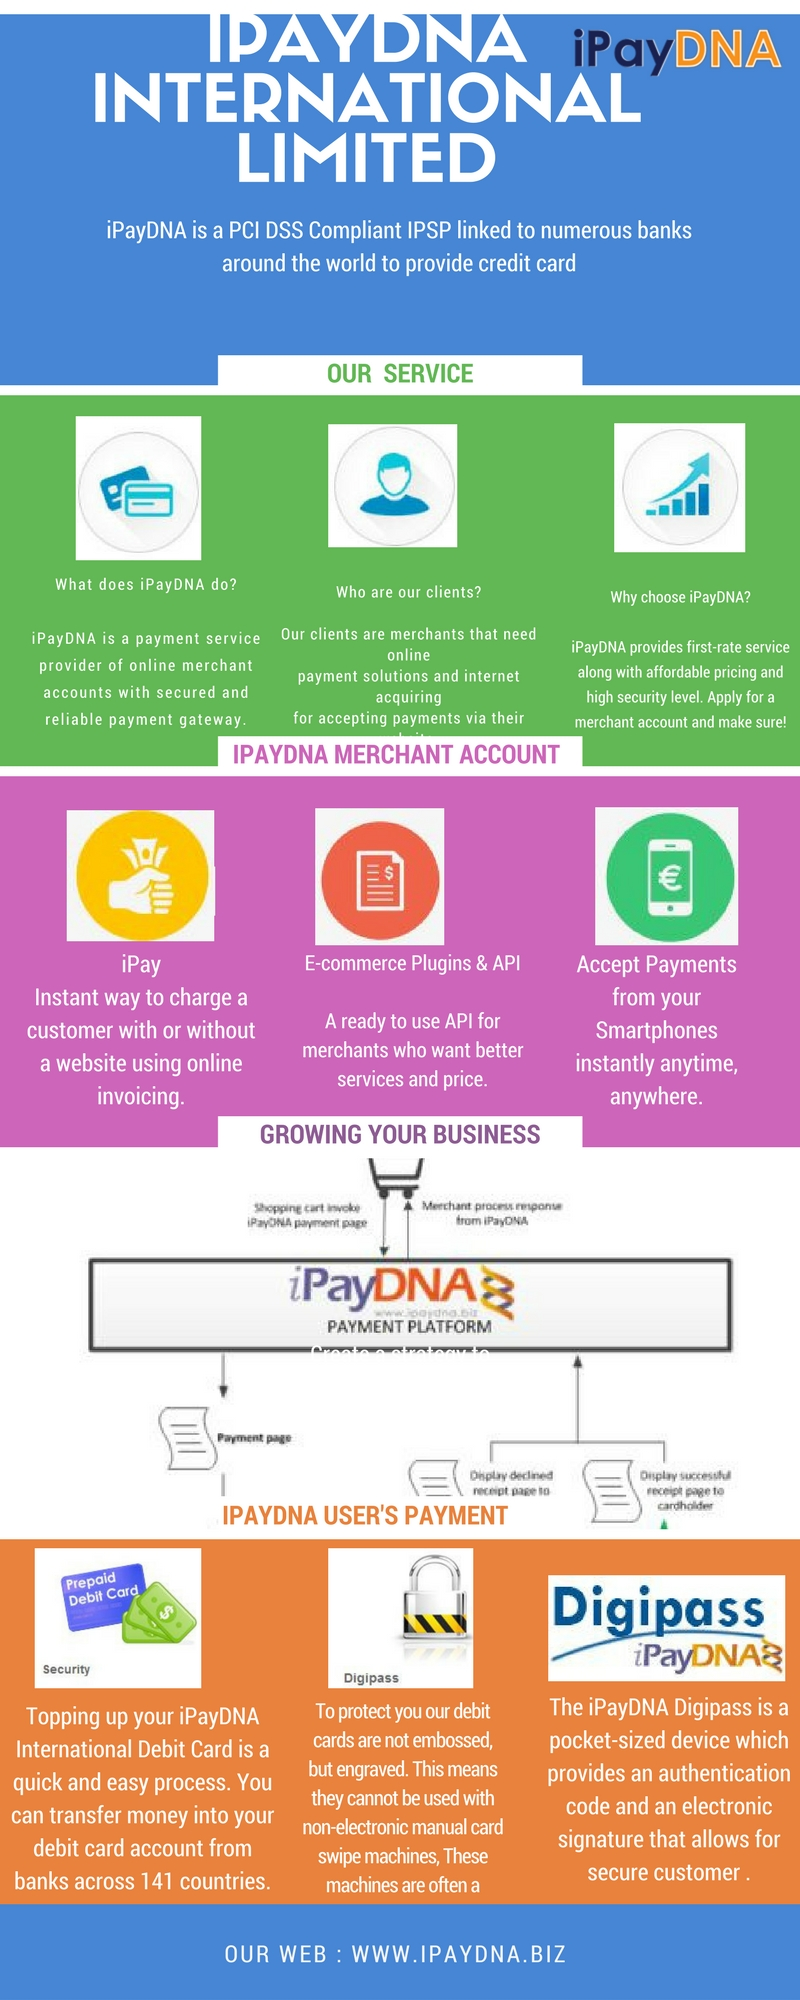 ipaydna_world_wide_payment_service_provider.jpg  by ipaydna1